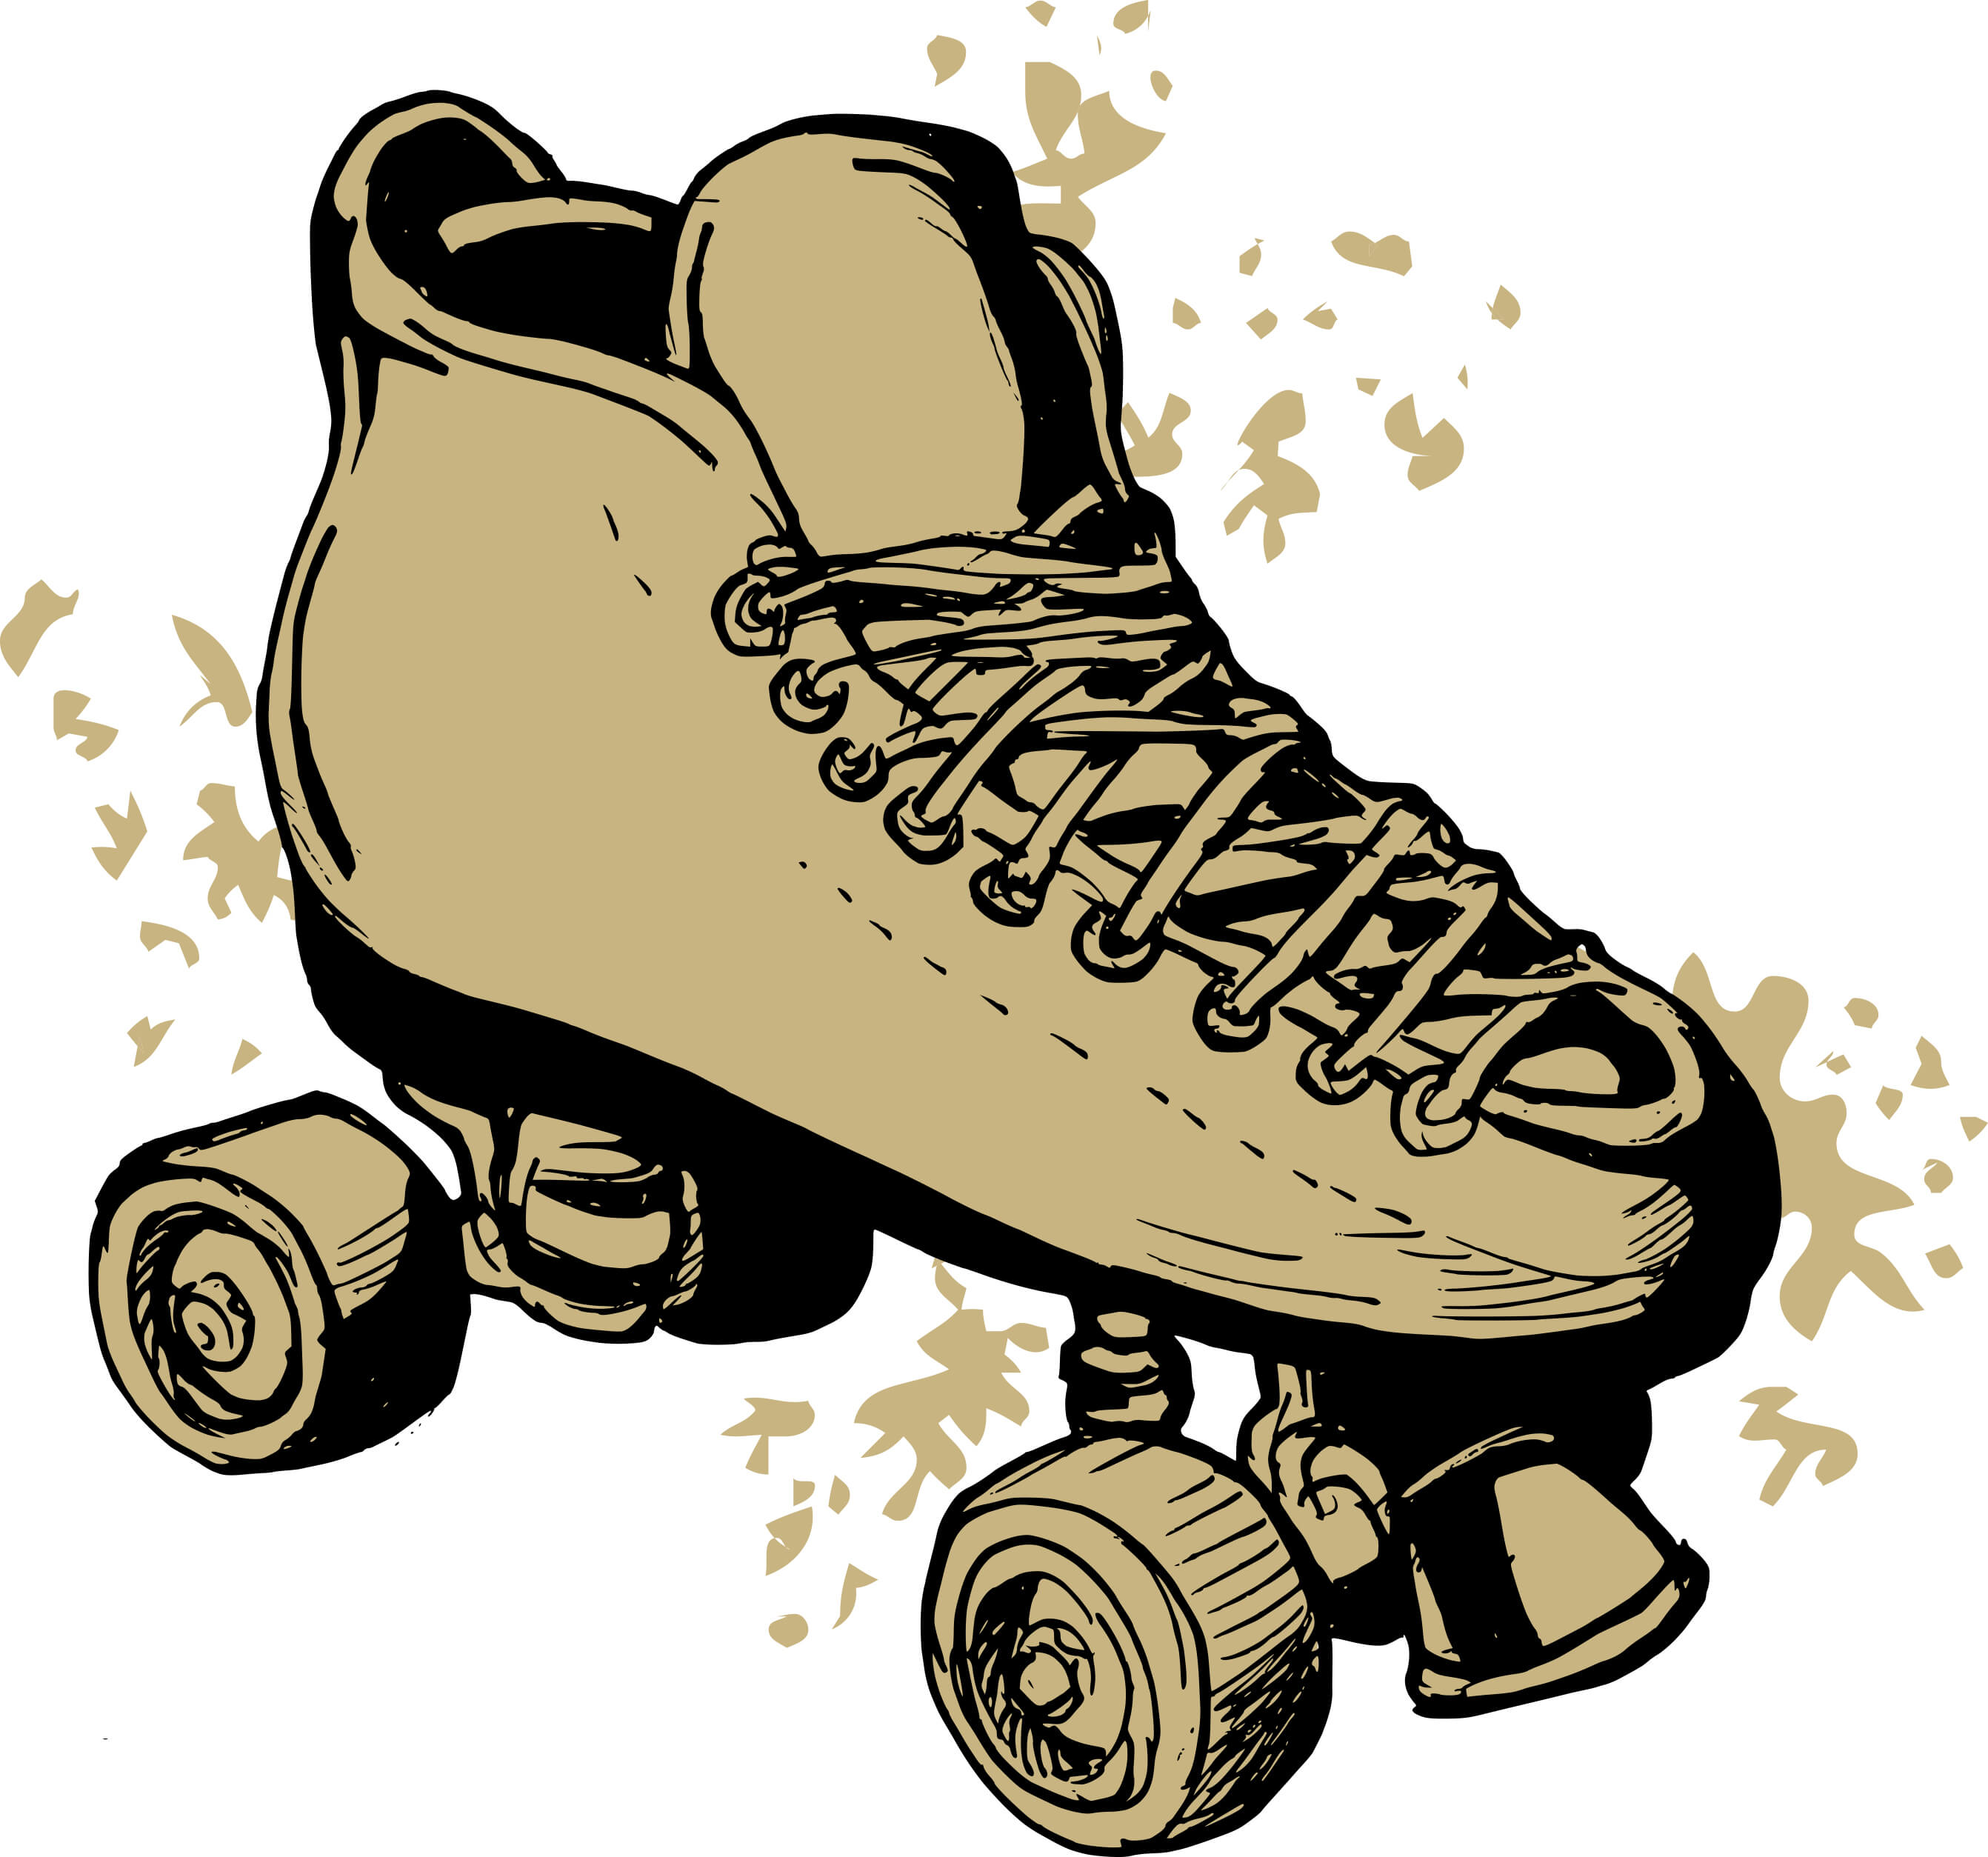 Roller skating rink quad cities - How To Care For Roller Skates